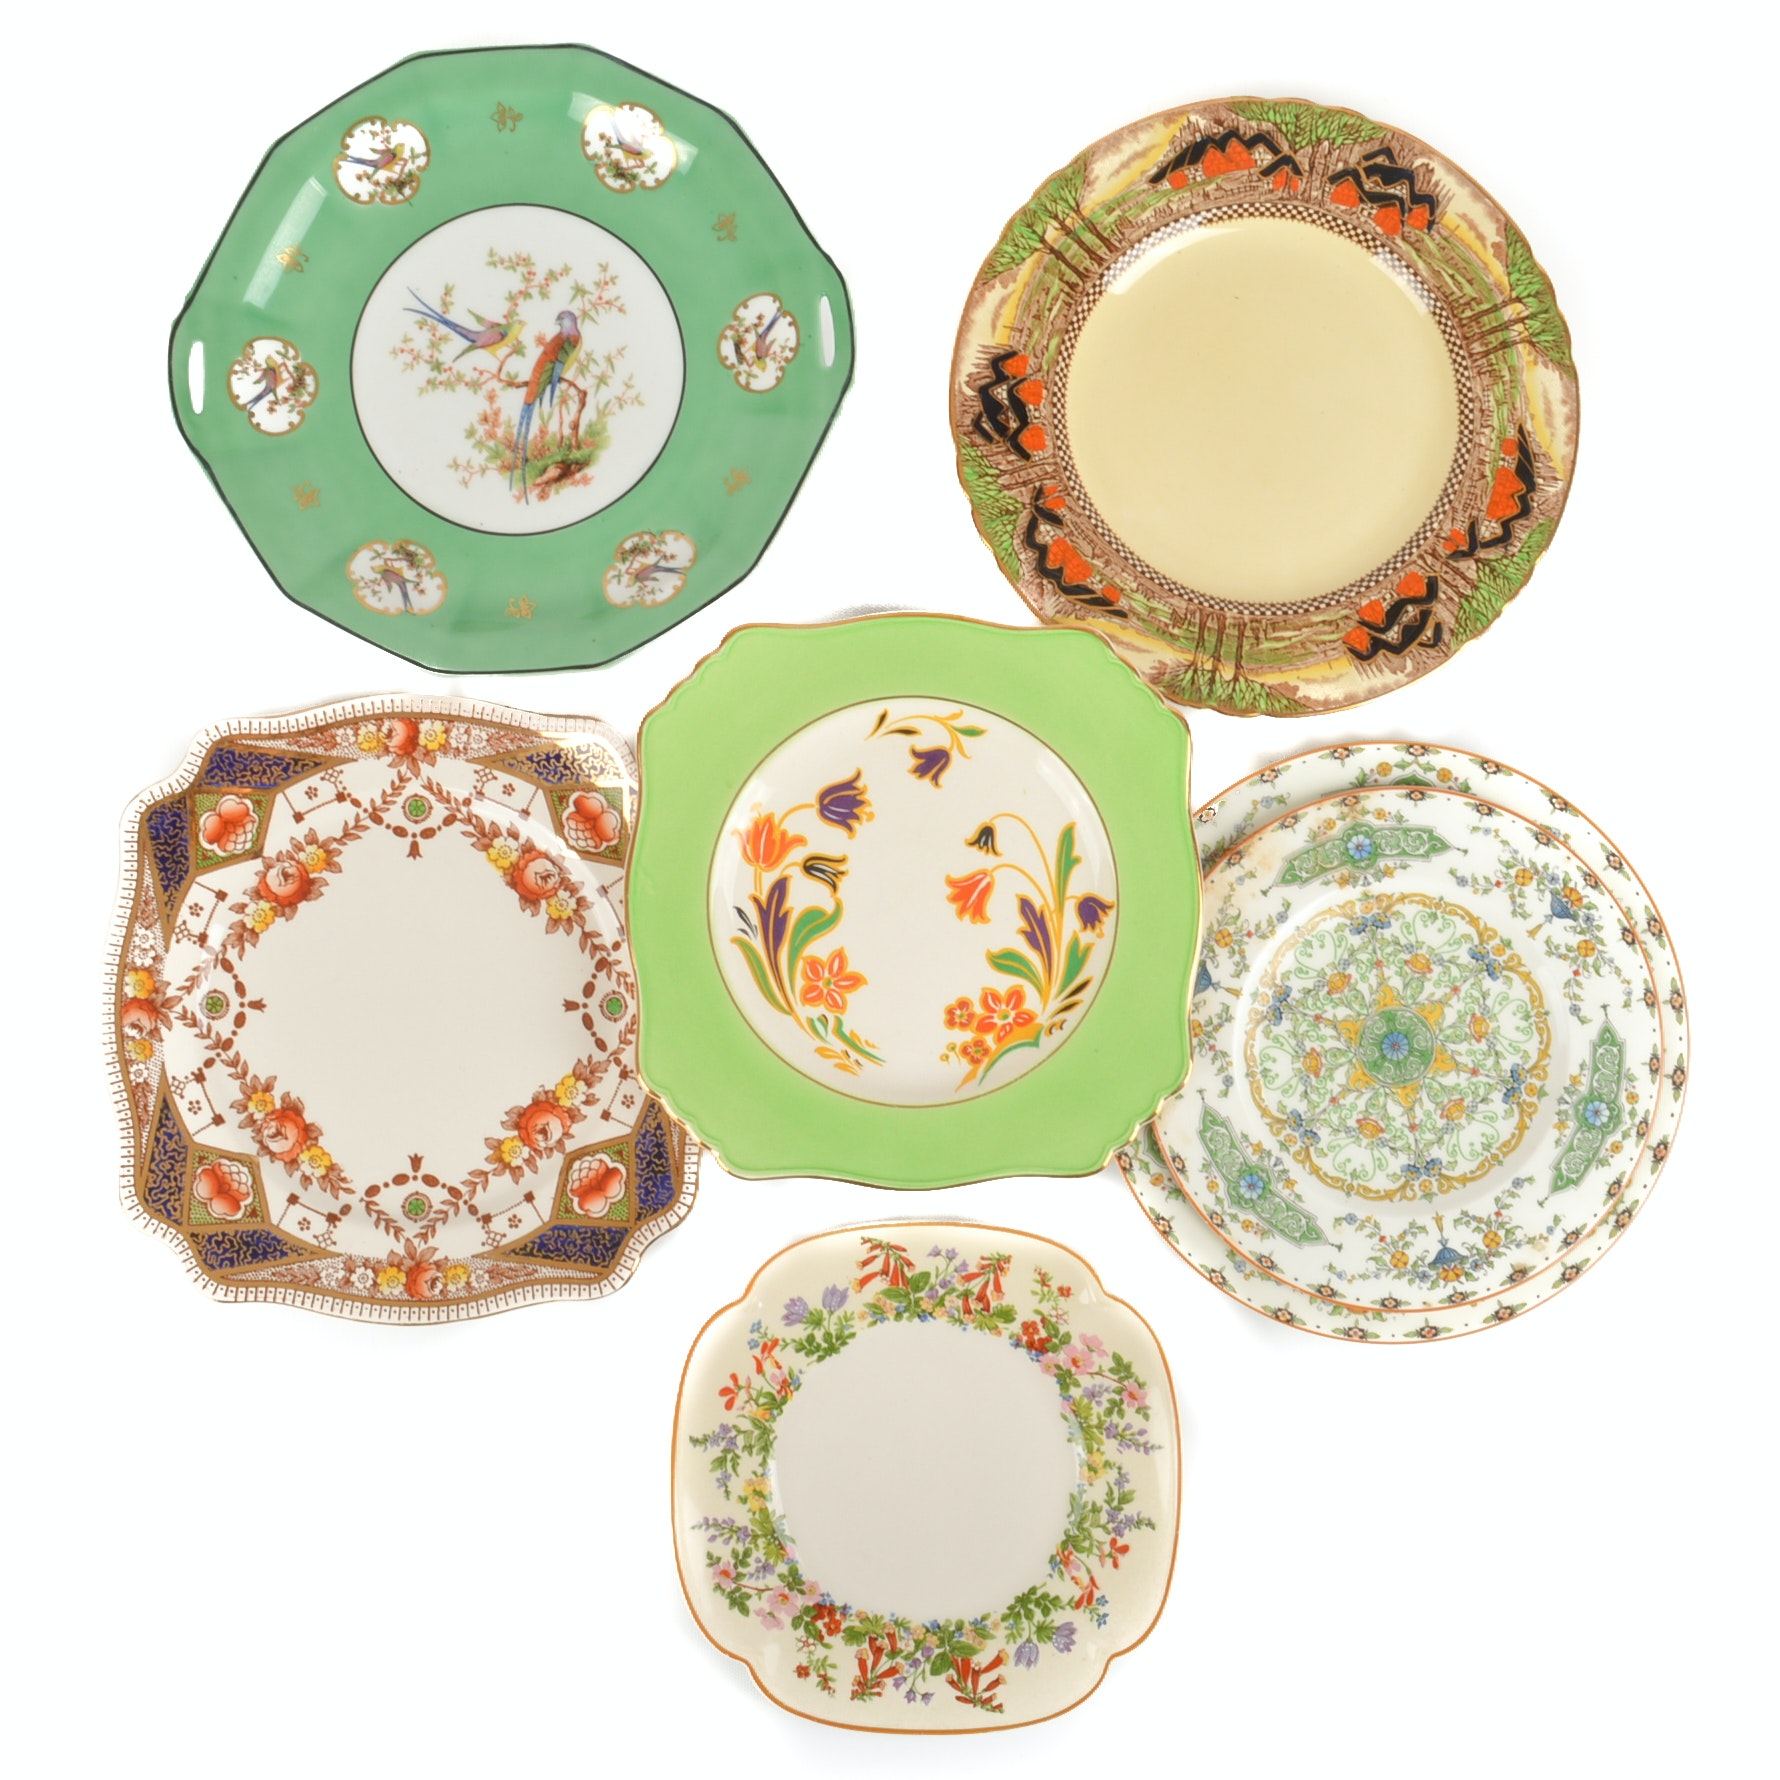 Vintage Floral China and Porcelain Plate Collection including Royal Worcester